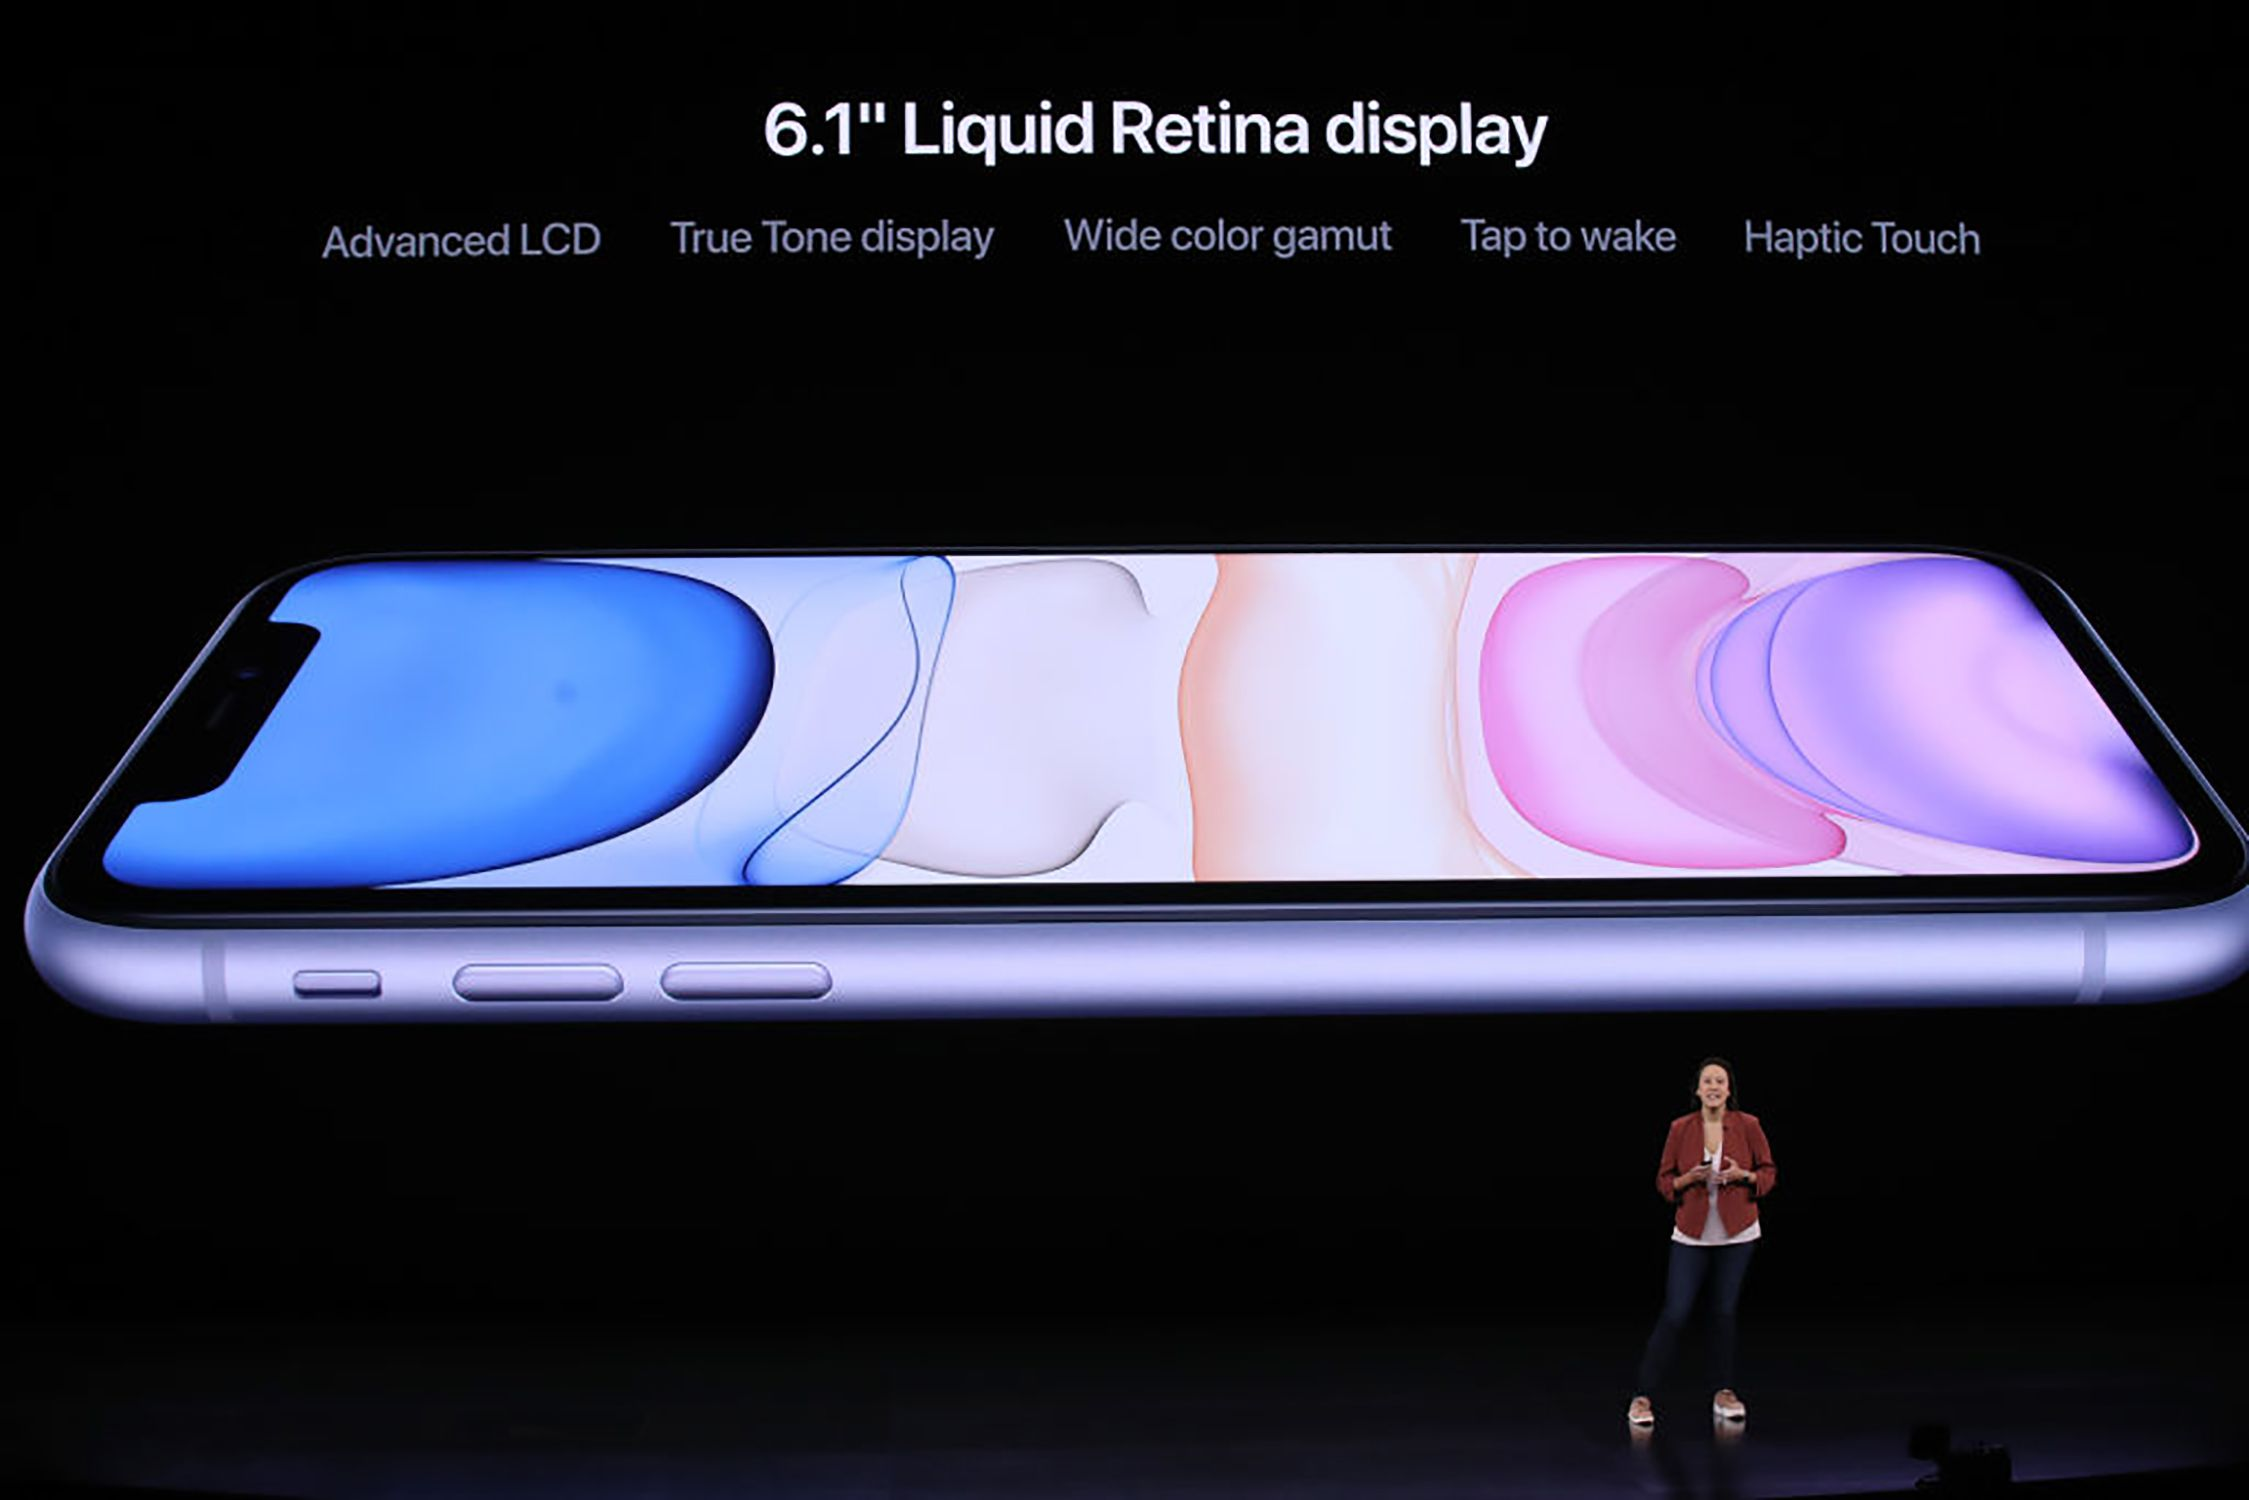 iPhone 11 screen specs presented at introductory event